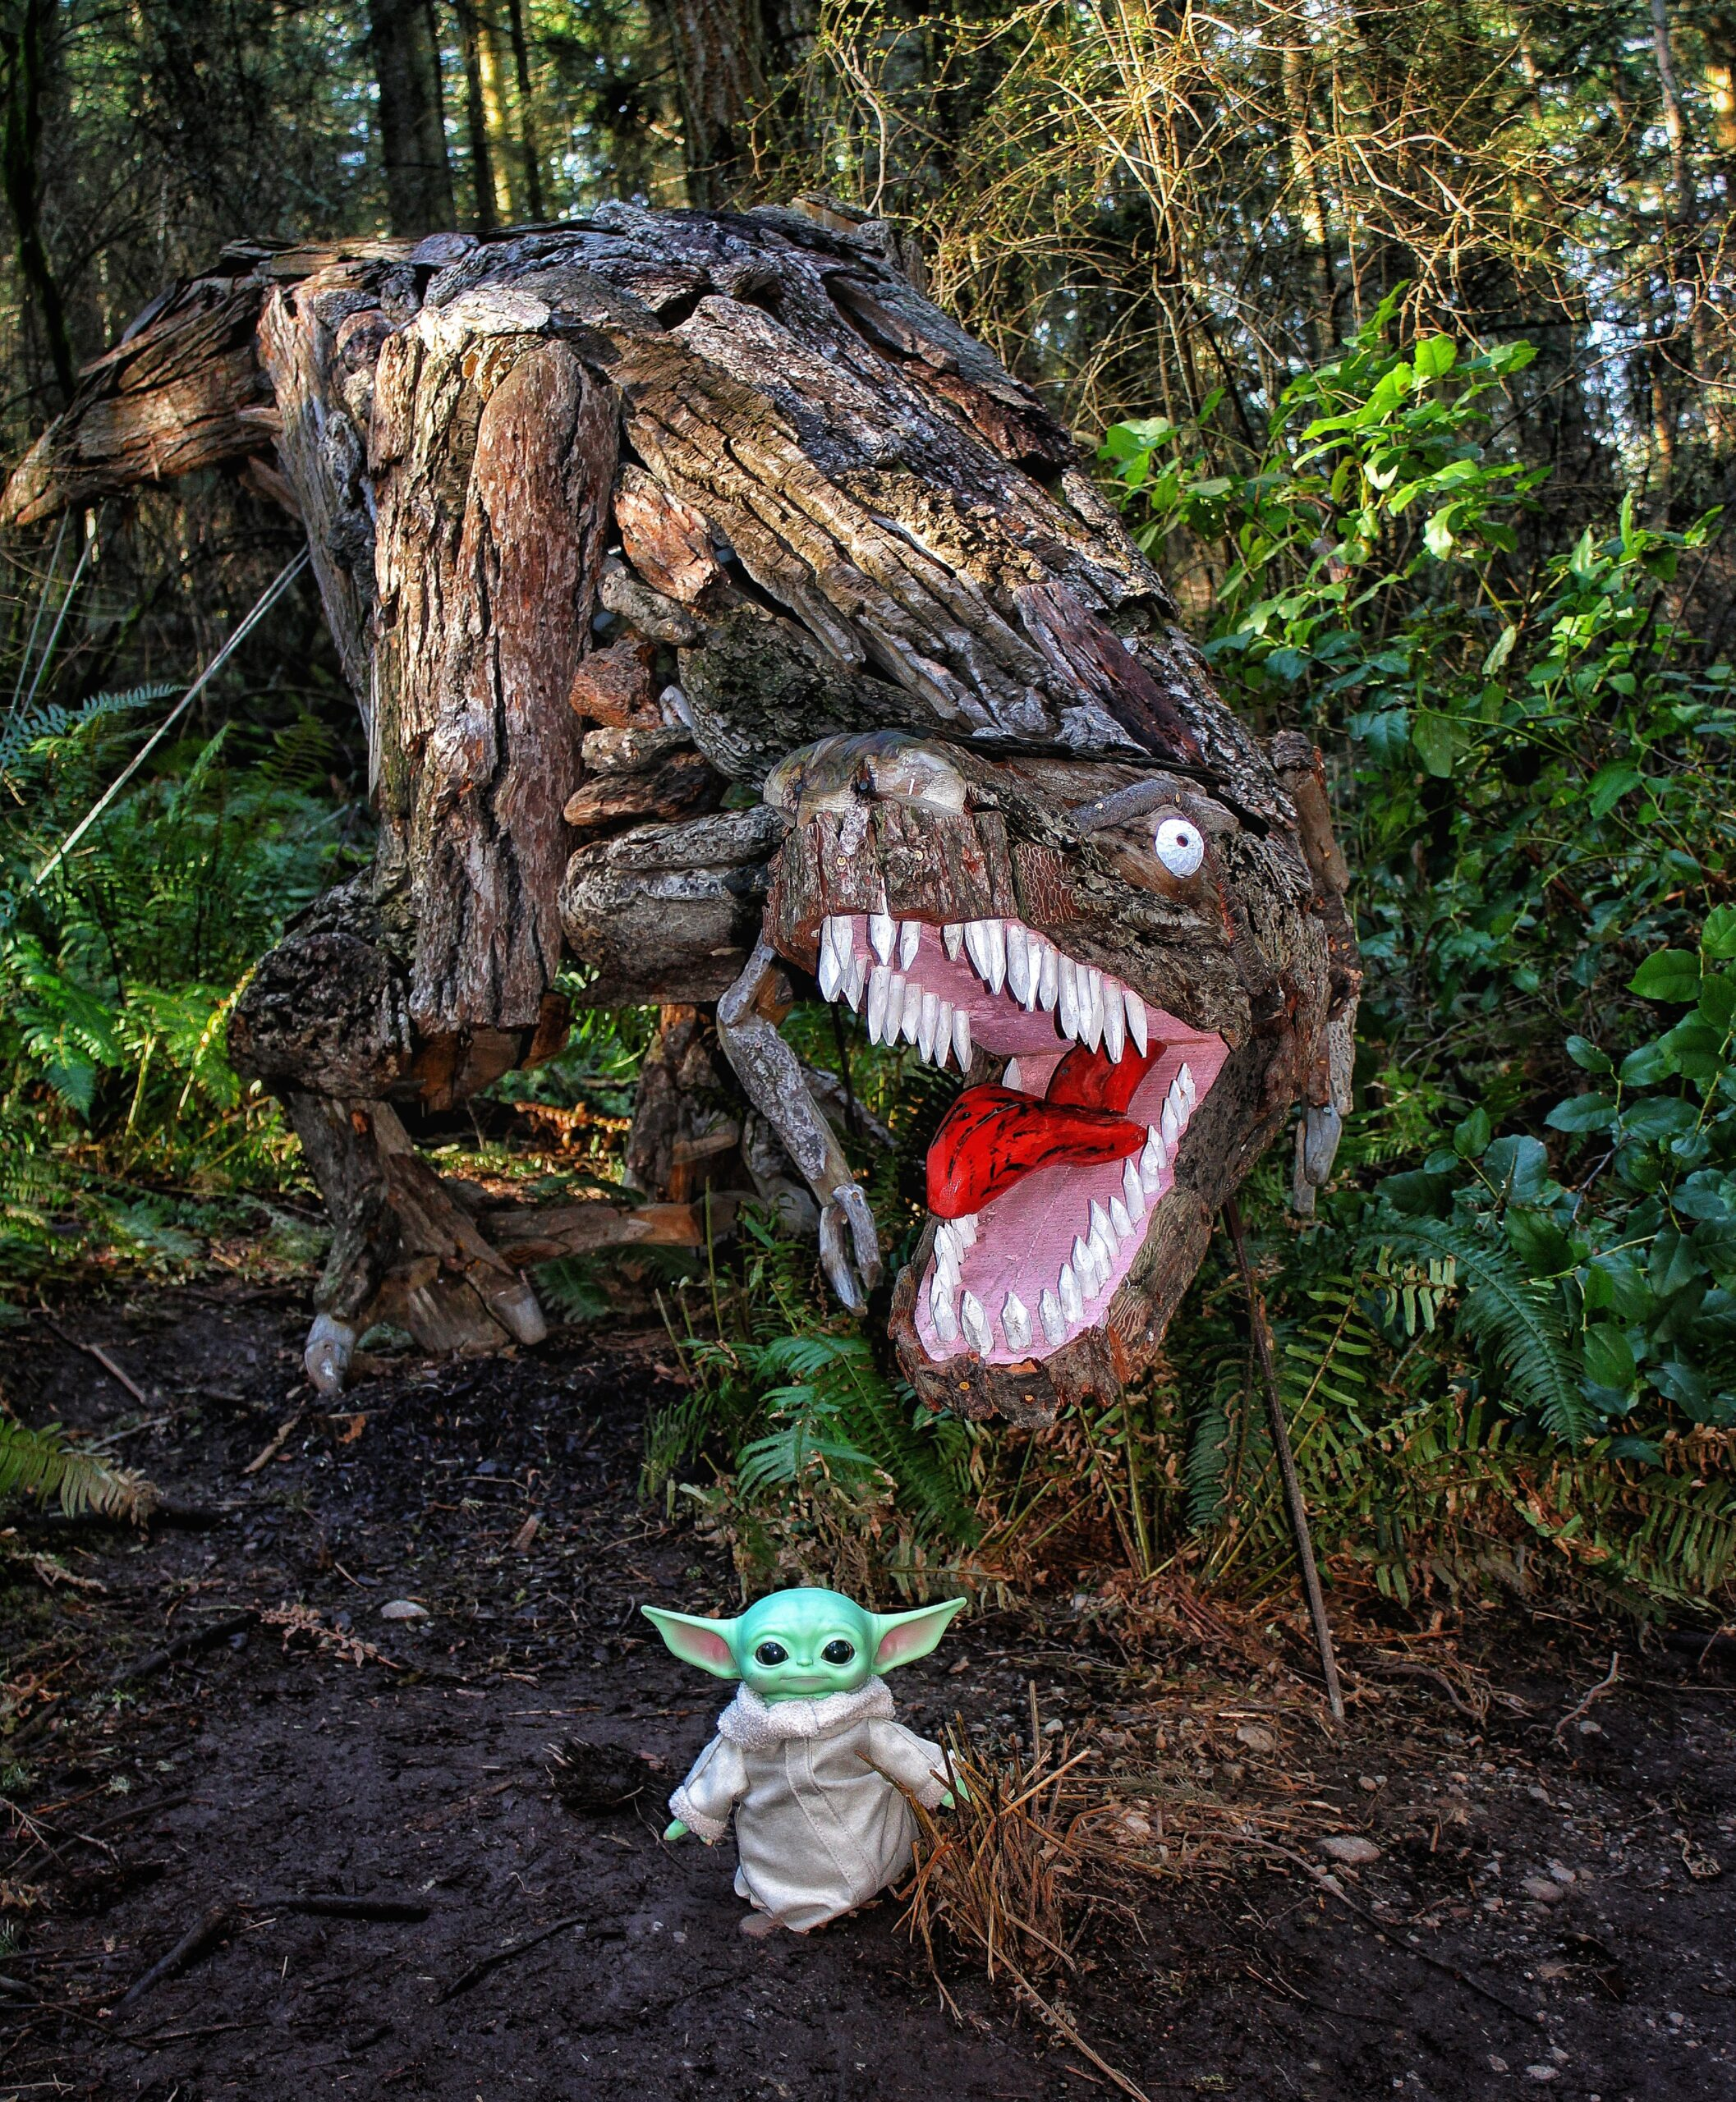 Joe Treat Tyrannosaurus Rex with Baby Yoda Grogu at Price Sculpture Forest - photo by Calex Haney from Oak Harbor WA Instagram concordiaphotos